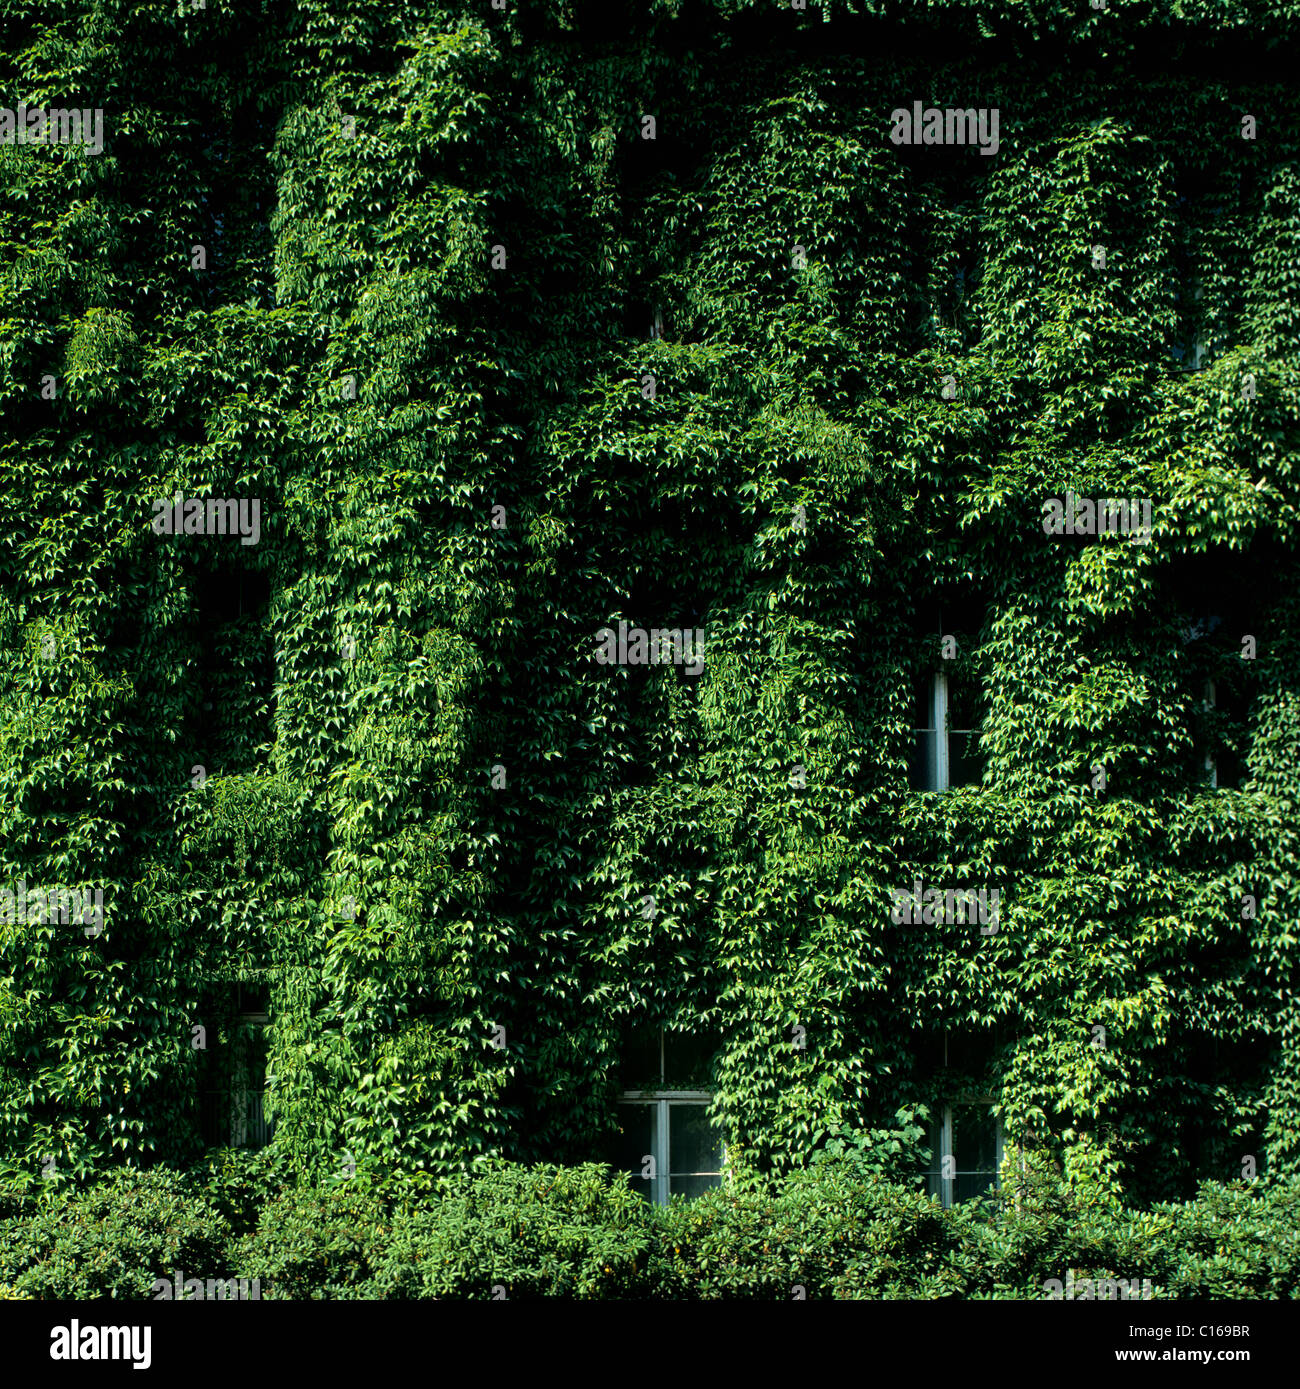 Vegetated house facade, window almost completely overgrown - Stock Image